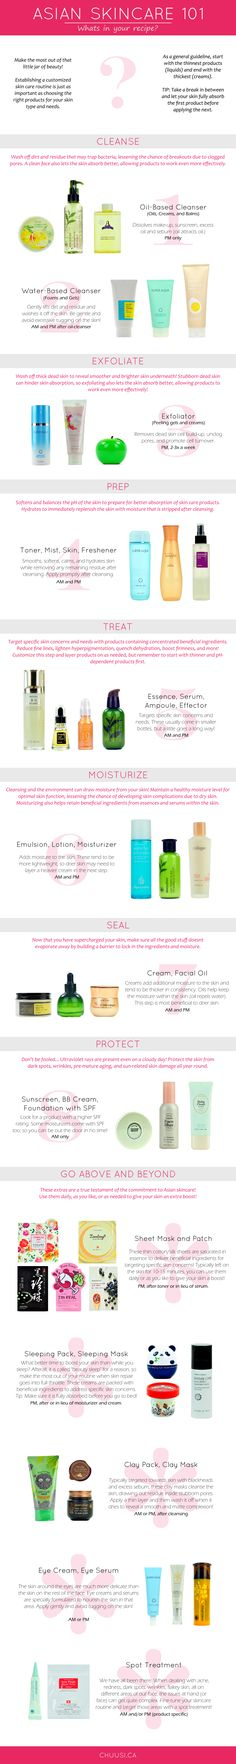 The Korean Asian Skincare routine involves layering multiple products to address., Korean Asian Skincare routine involves layering multiple products to address your skin concerns such as dryness, excess sebum, clogged pores, and . Asian Skincare, Korean Skincare Routine, Skin Tips, Skin Care Tips, Sensitive Skin Care, Clogged Pores, Image Skincare, Skincare Logo, Skin Routine